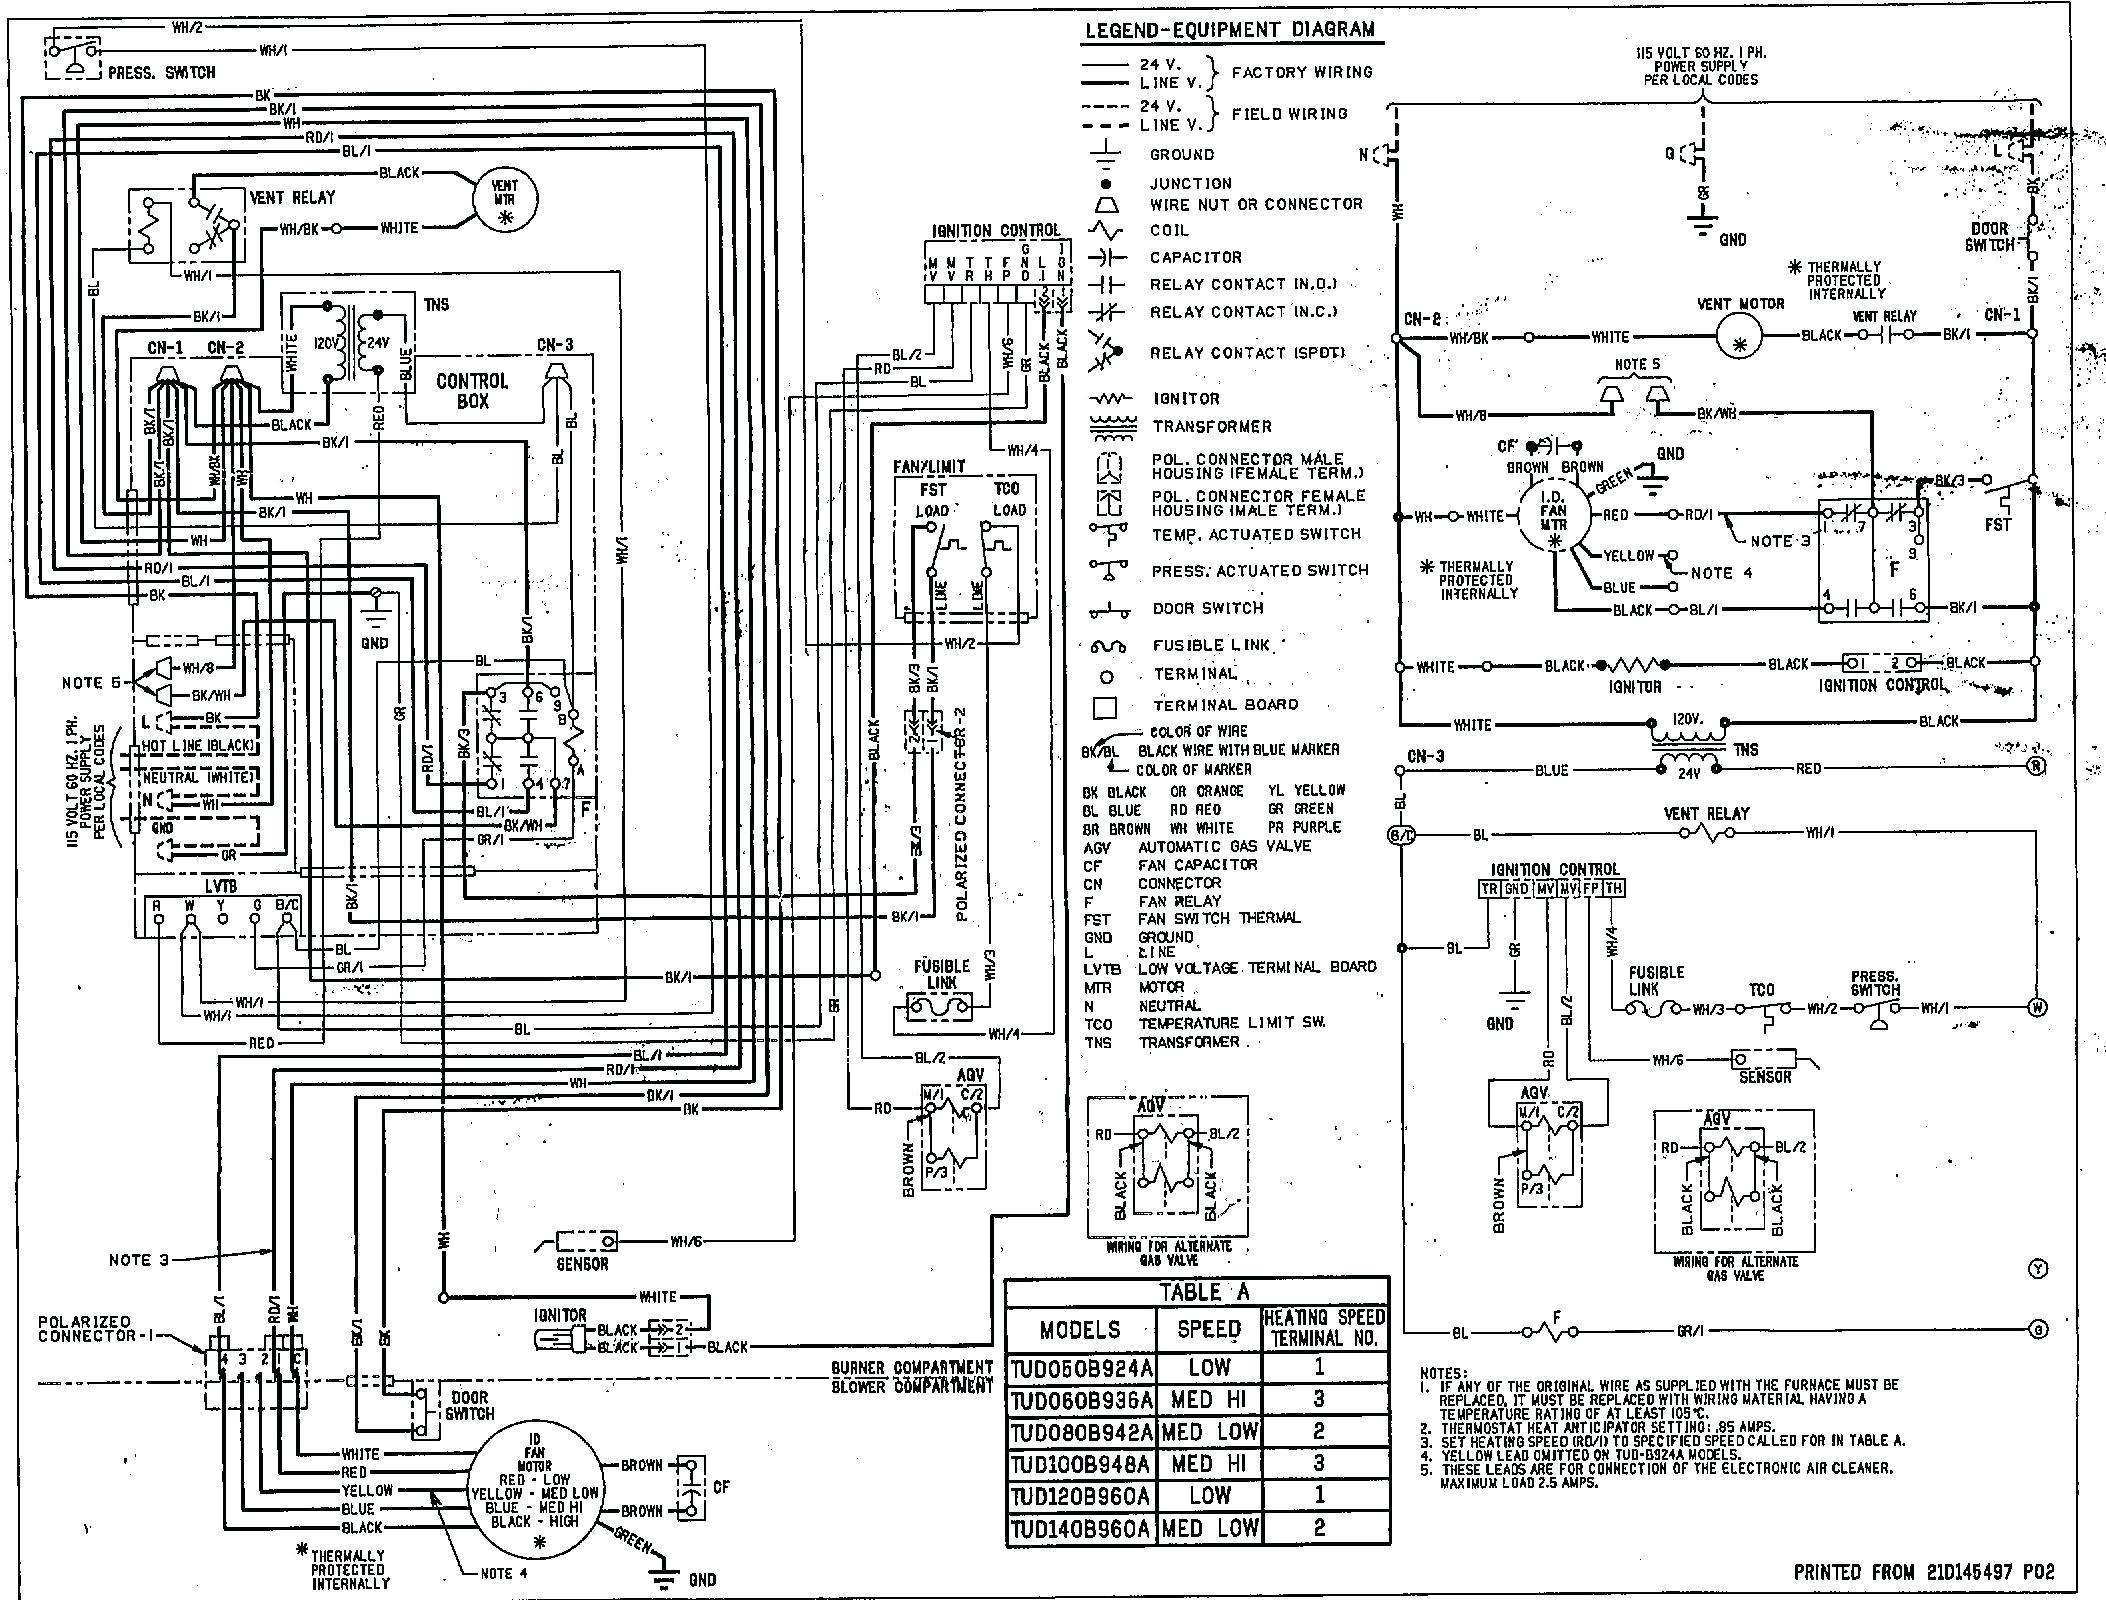 [DIAGRAM] Hh84aa020 Circuit Control Board Wiring Diagram